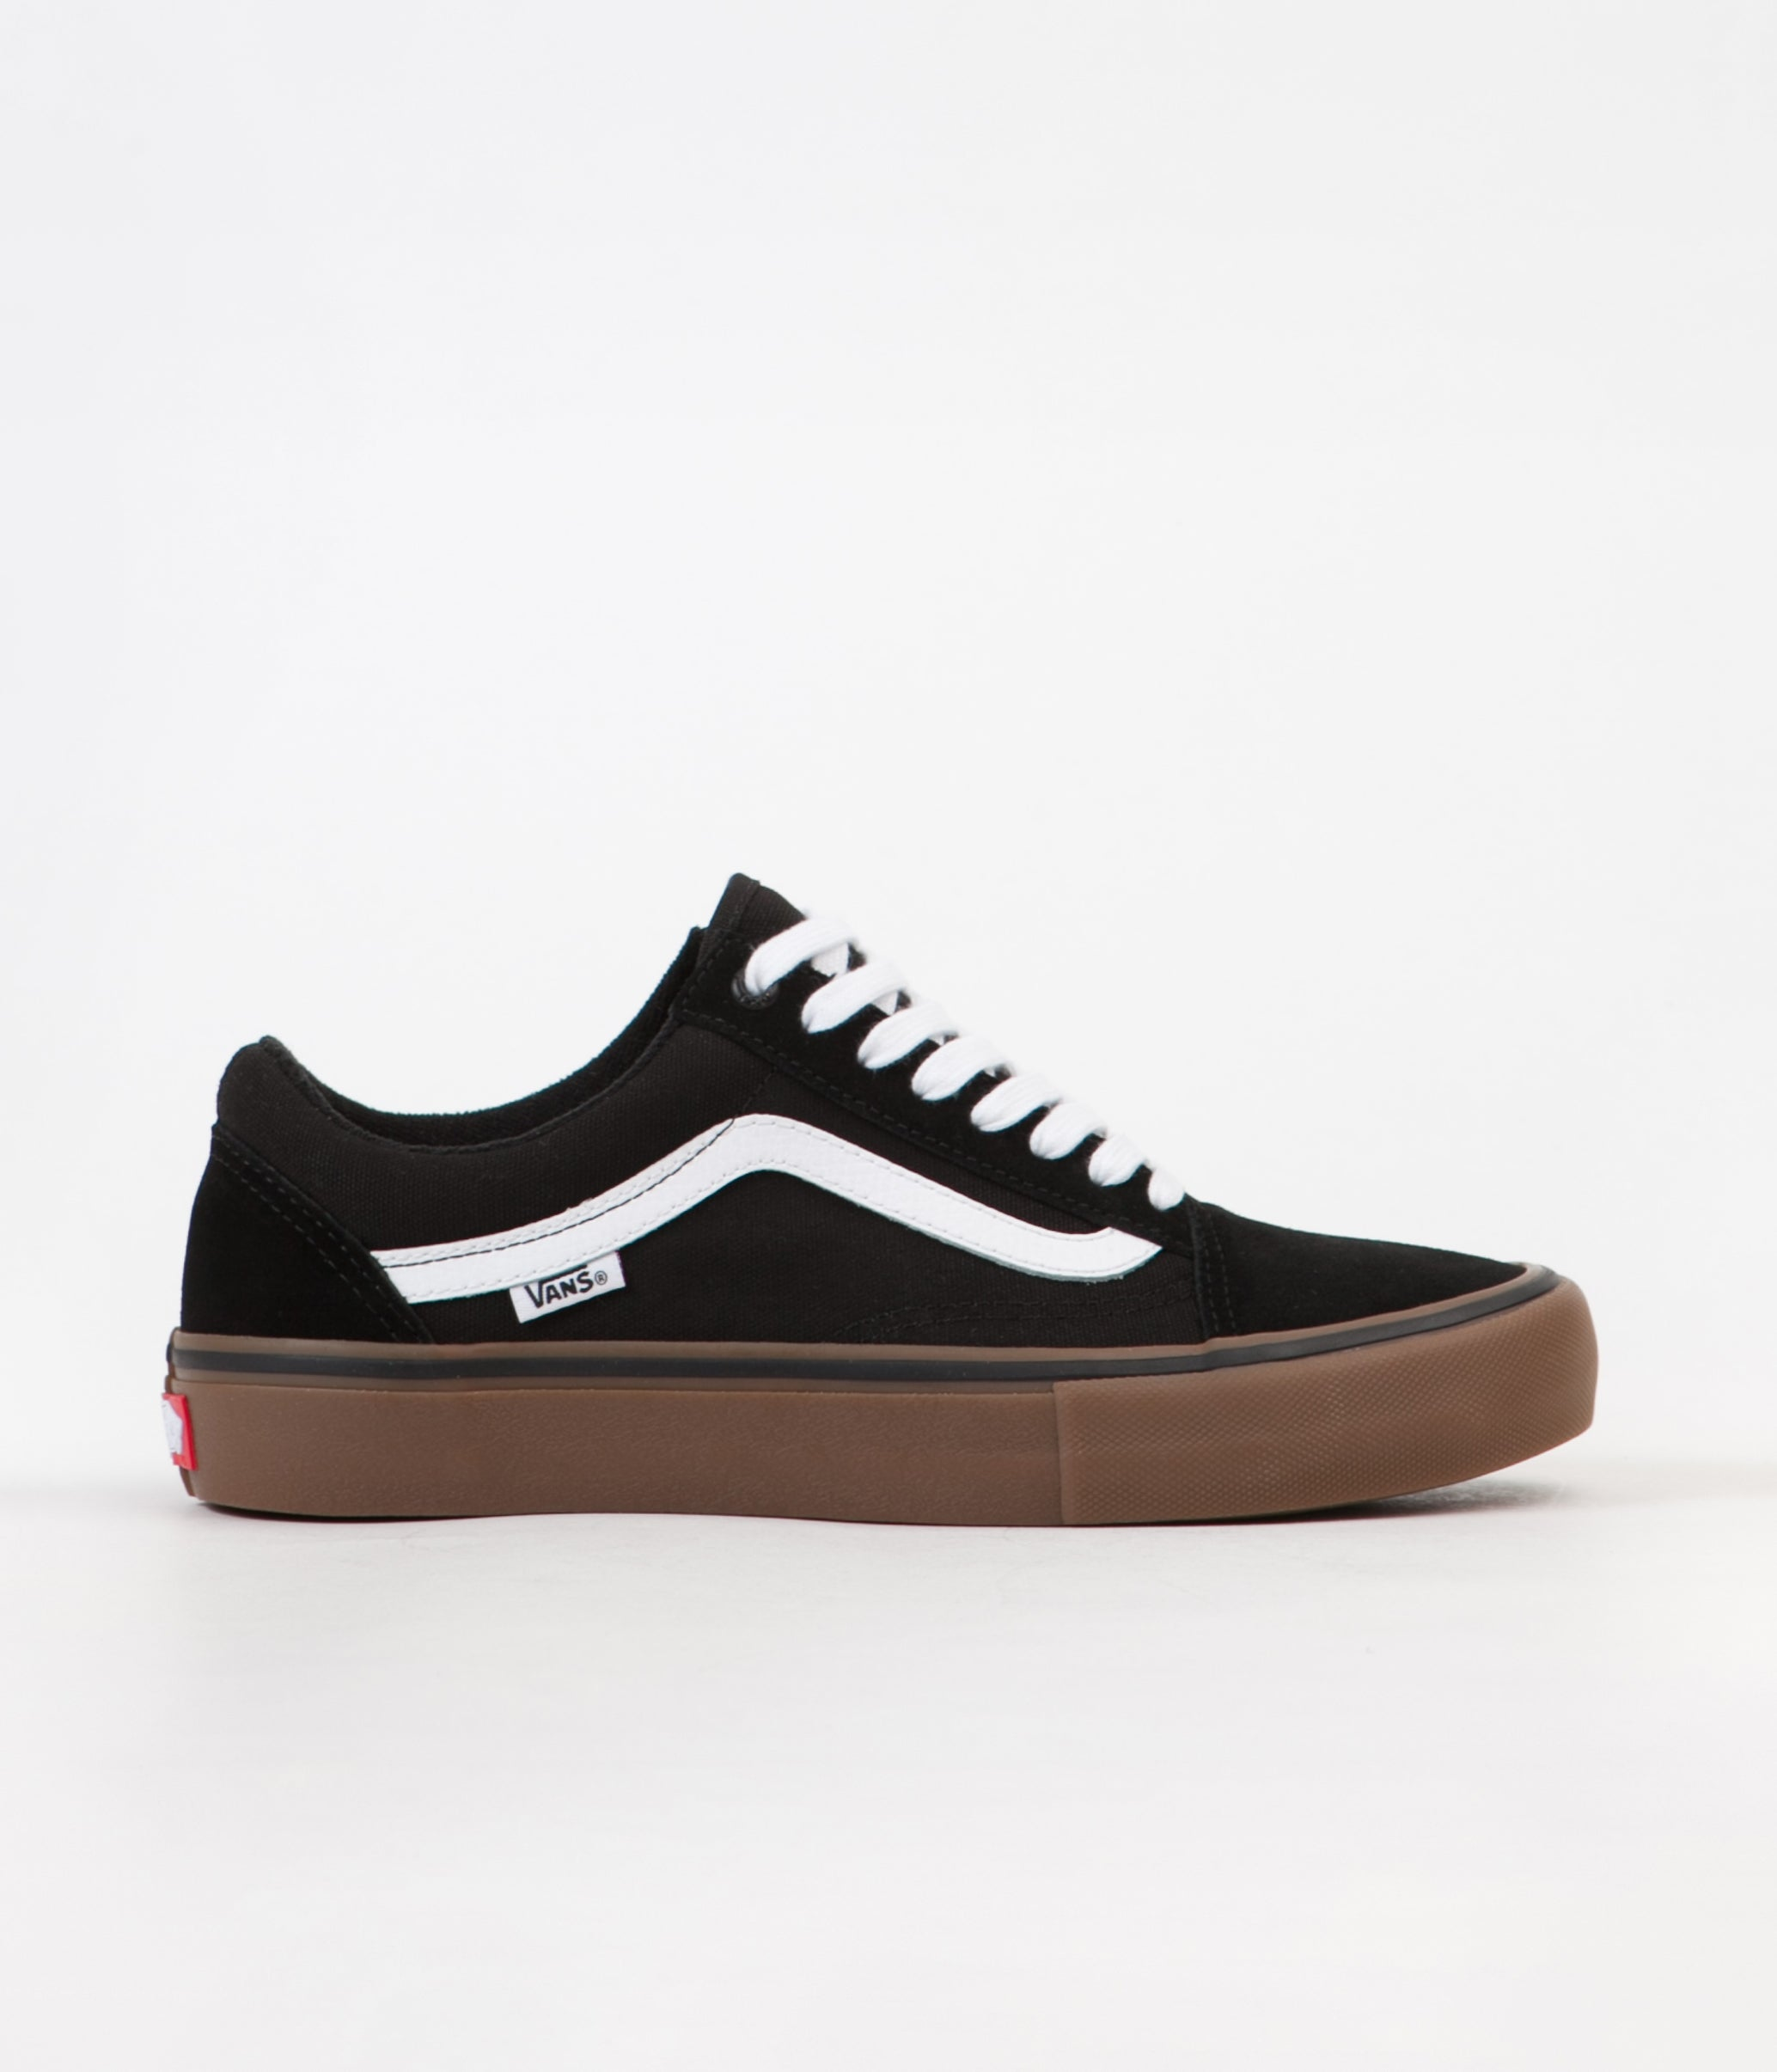 dfbb7b73e9 Vans Old Skool Pro Shoes - Black   White   Medium Gum